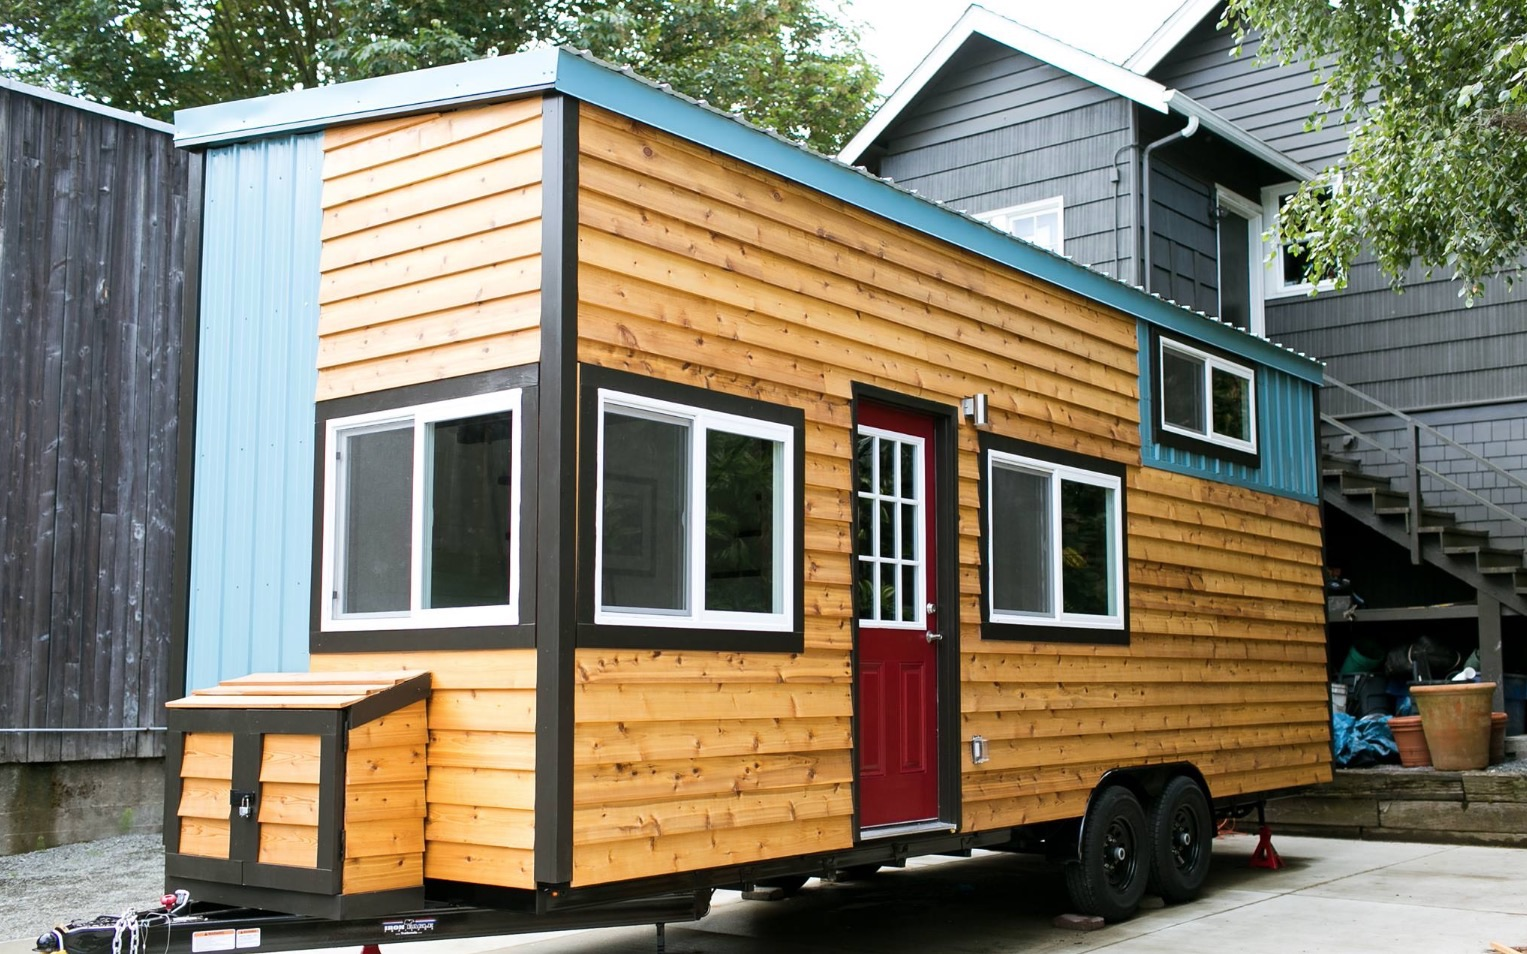 Shannon 39 s custom tiny home on wheels for Micro homes on wheels